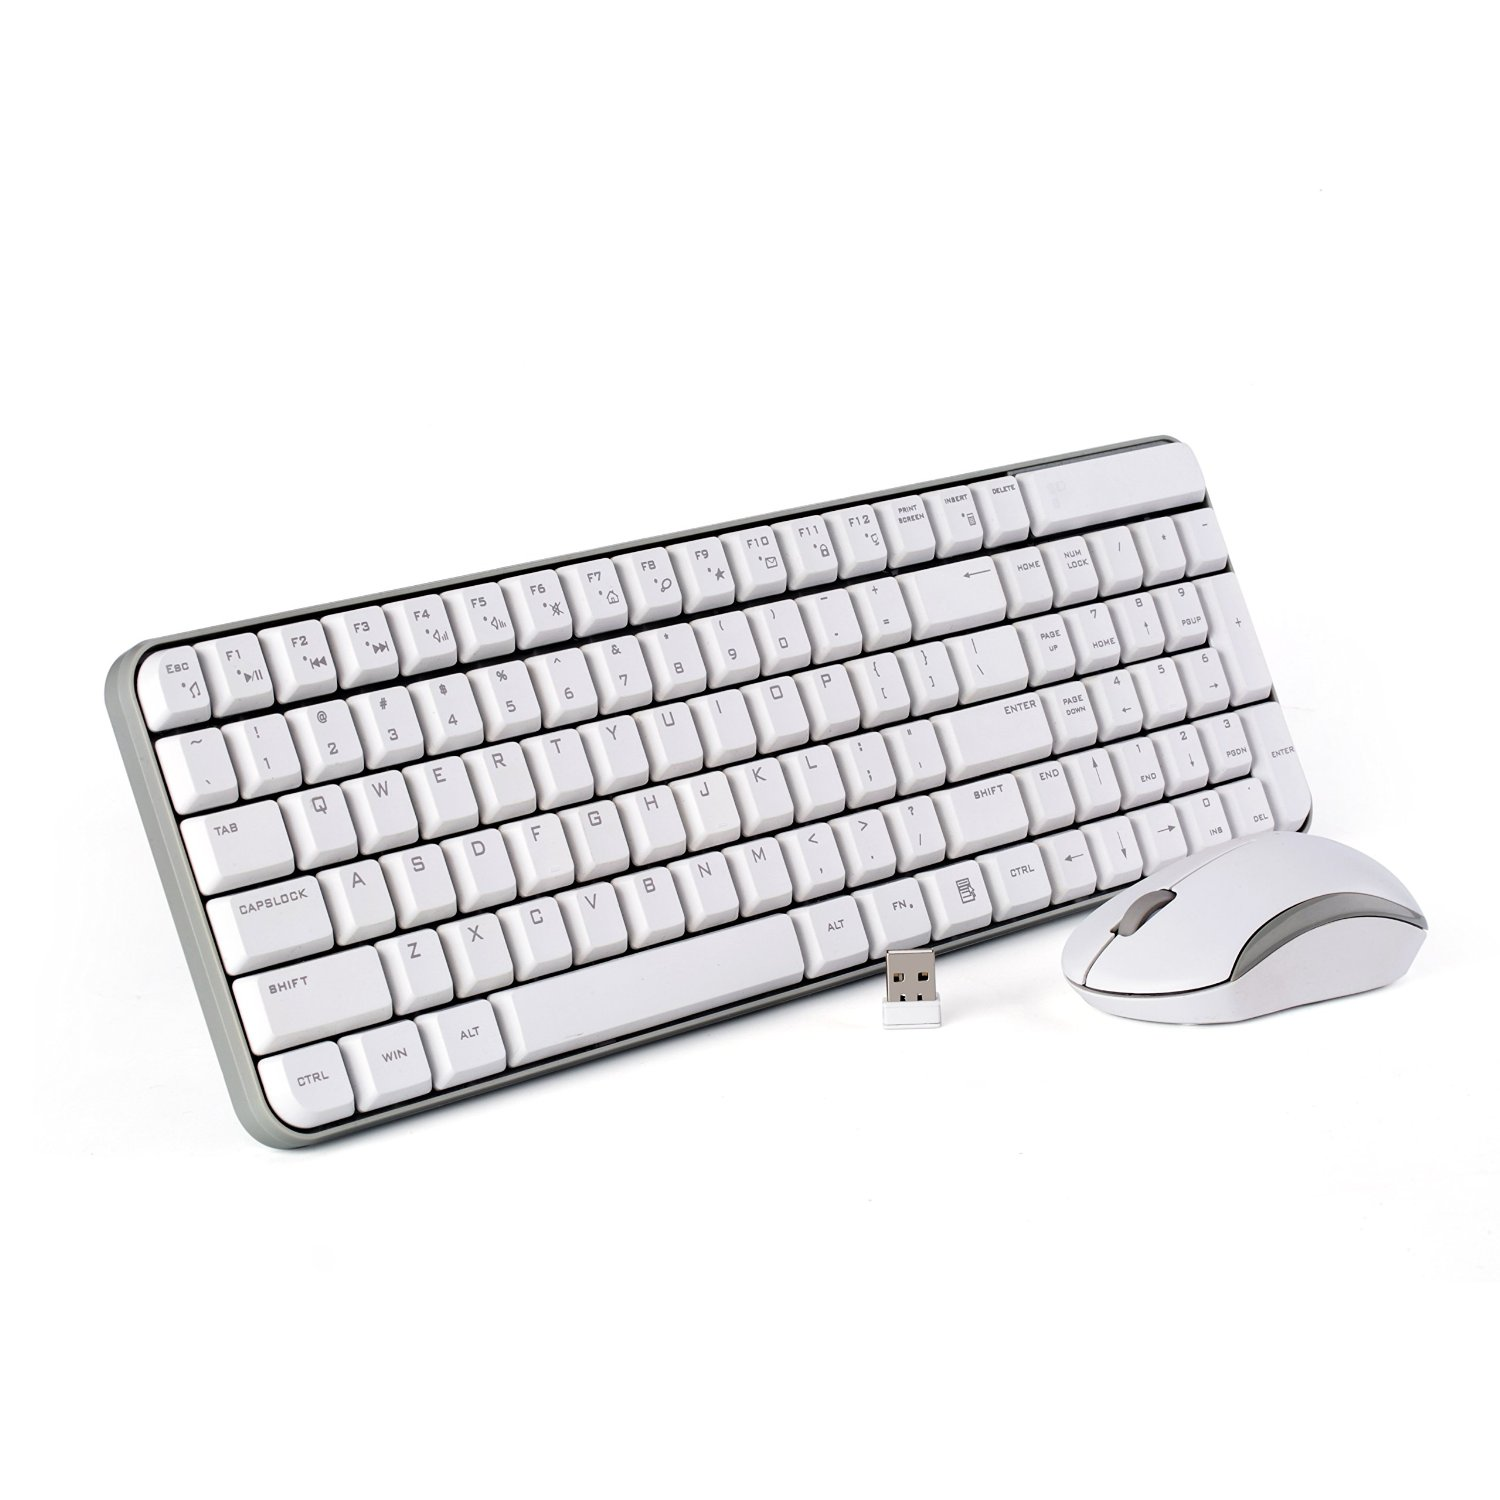 jelly comb mk08 whisper quiet ultra compact wireless keyboard. Black Bedroom Furniture Sets. Home Design Ideas